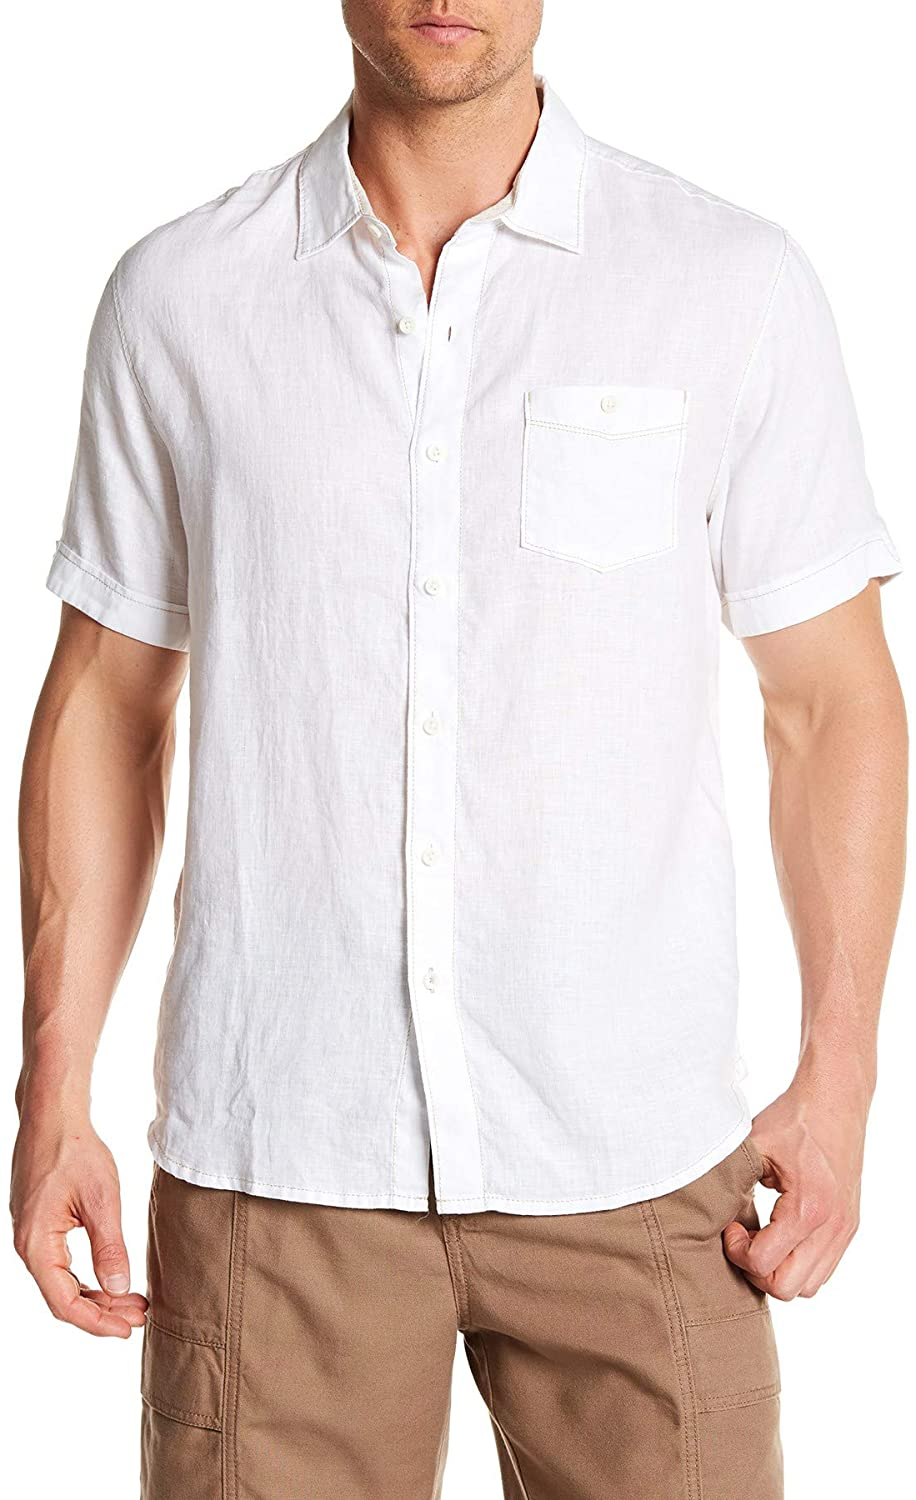 Tommy Bahama Party Breezer Linen Short Sleeve Modern Fit Shirt, White, X-Large